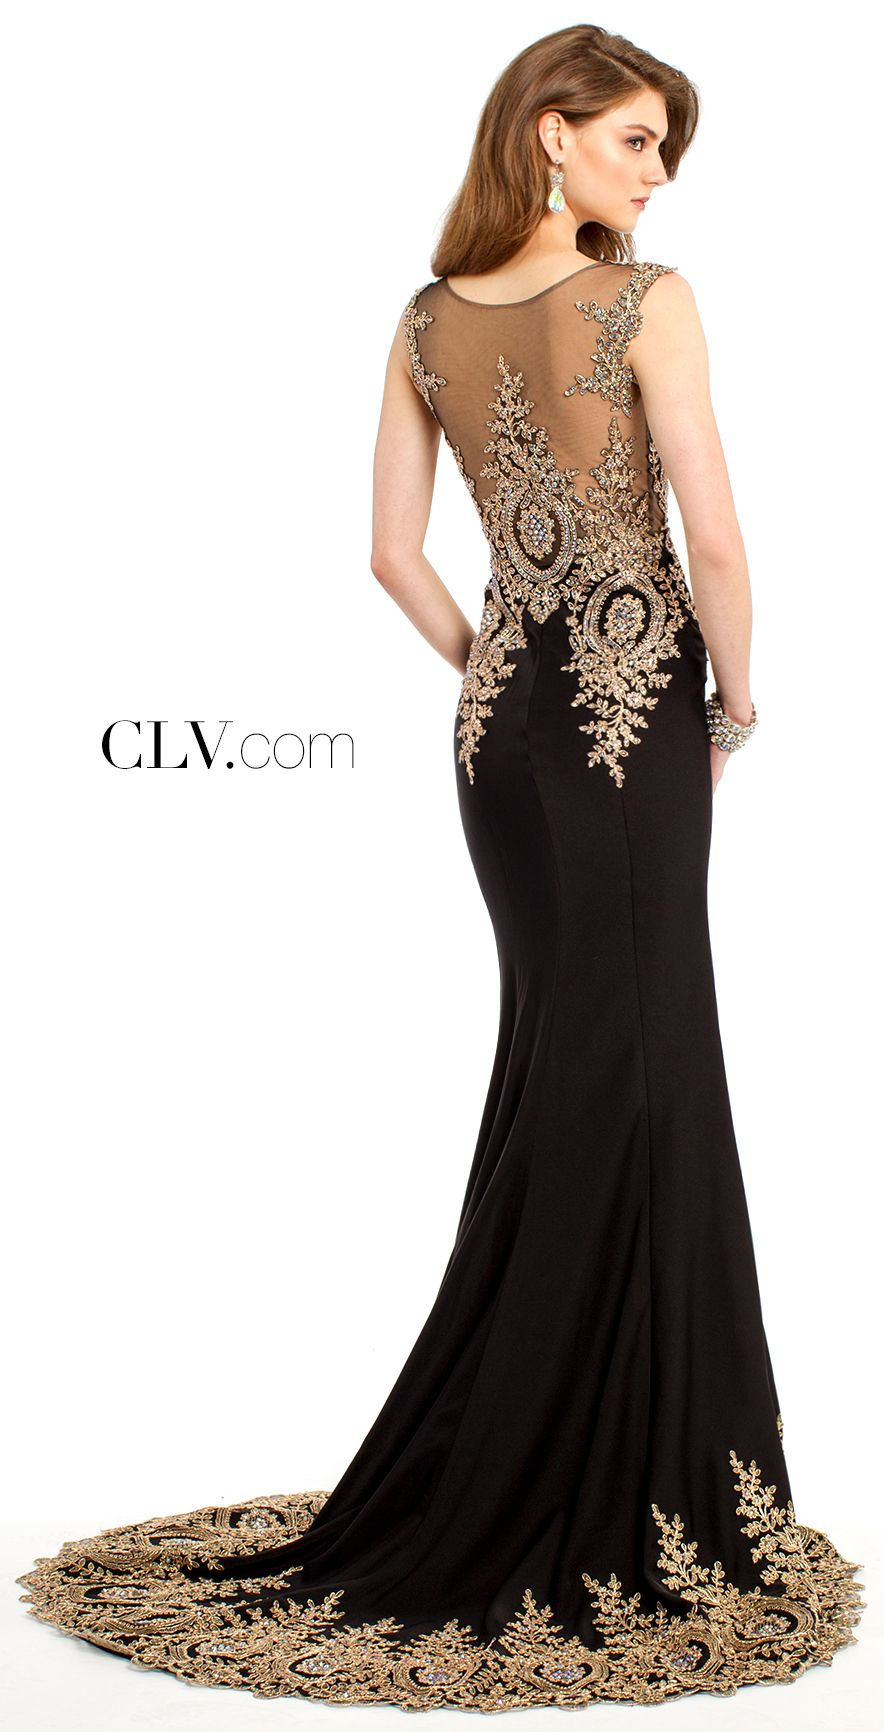 Camille La Vie Evening Gowns and Party Dresses  a2d0b56a2d86